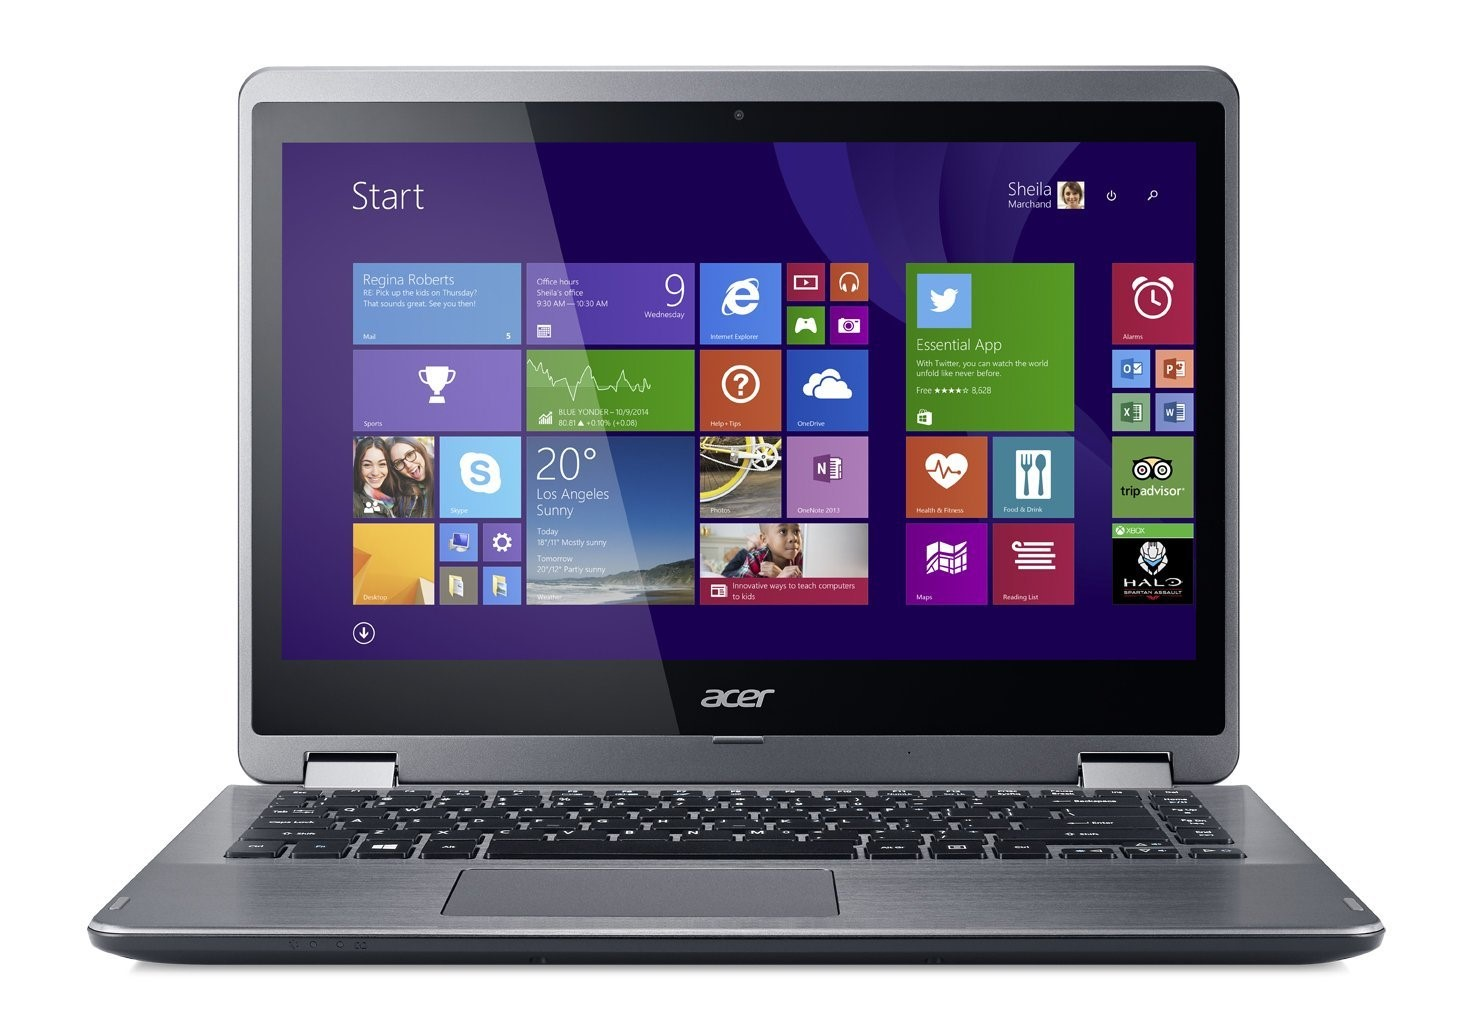 ACER Laptop/Netbook ASPIRE R3 N15W5